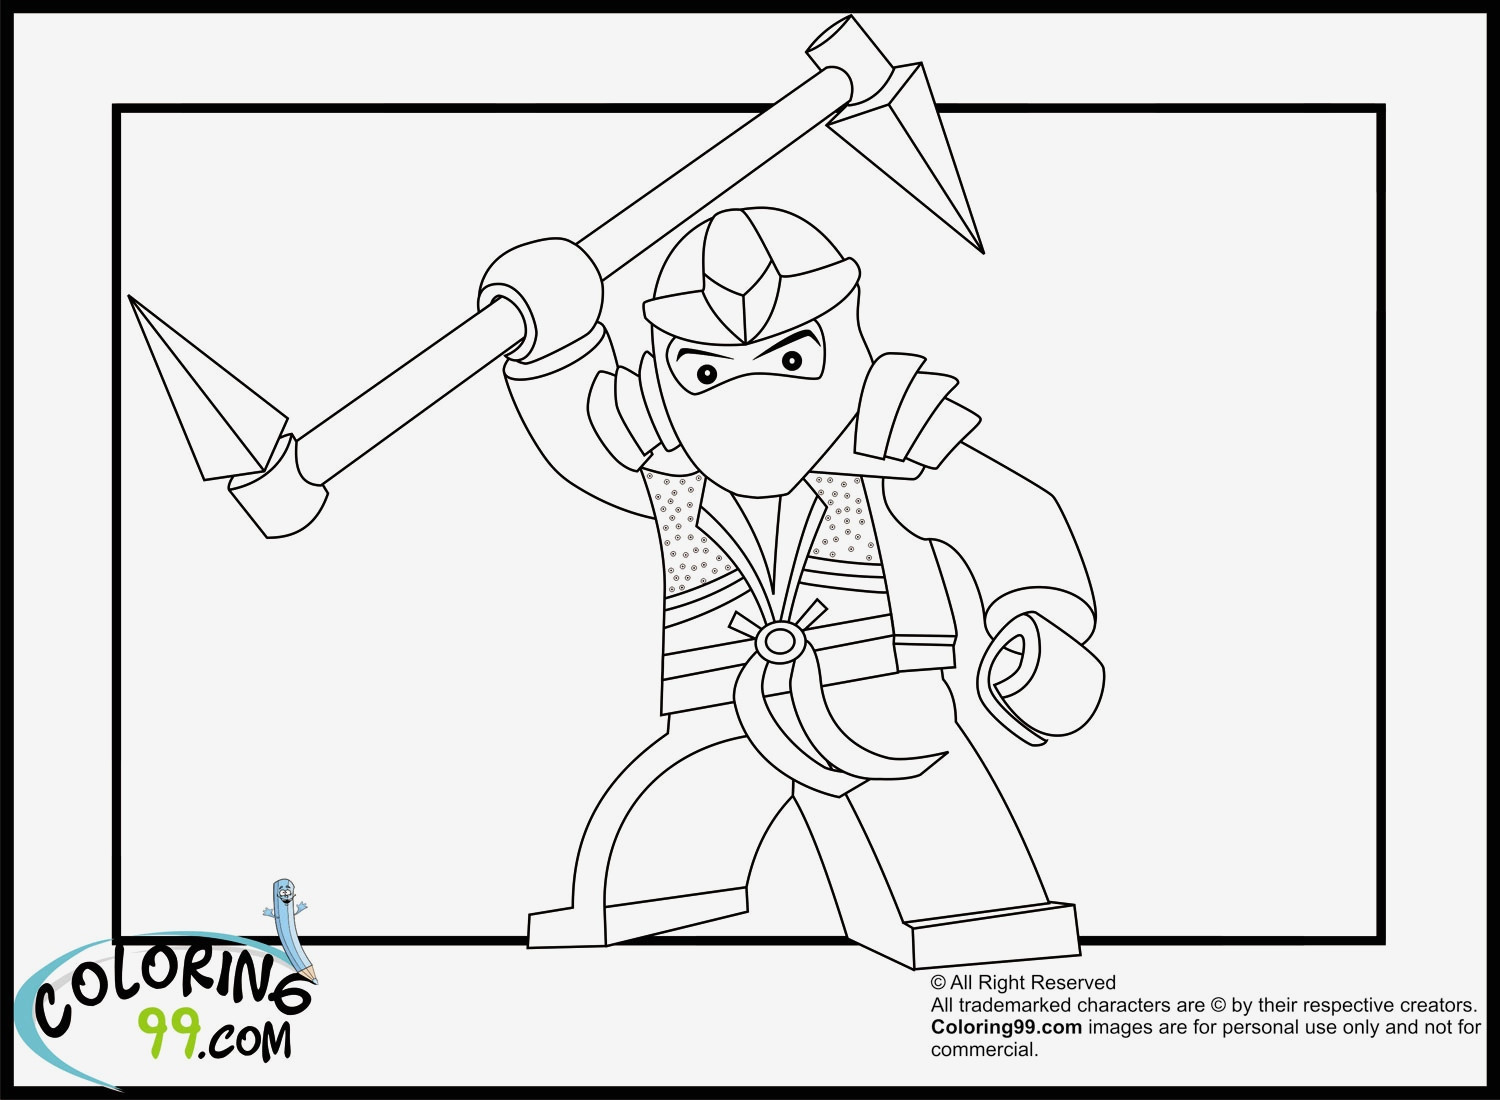 Ninjago Lloyd Bilder Das Beste Von Ninjago Coloring Sheets Amazing Advantages Color Sheets Elegant Sammlung